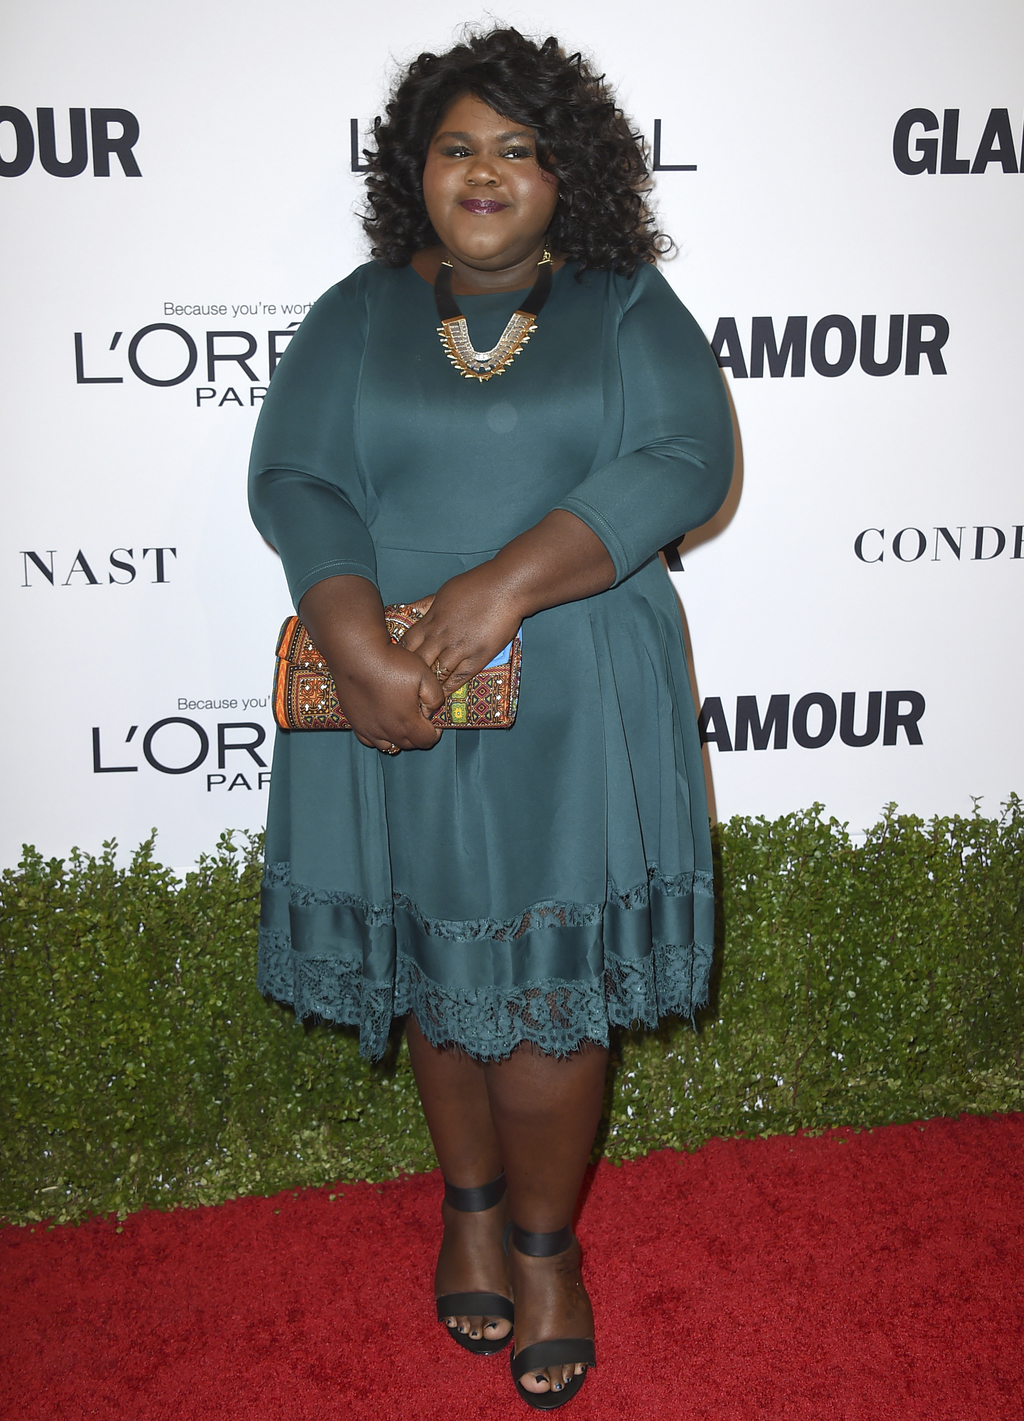 FILE - In this Nov. 14, 2016 file photo, Gabourey Sidibe arrives at the Glamour Women of the Year Awards in Los Angeles. Sidibe says sh...